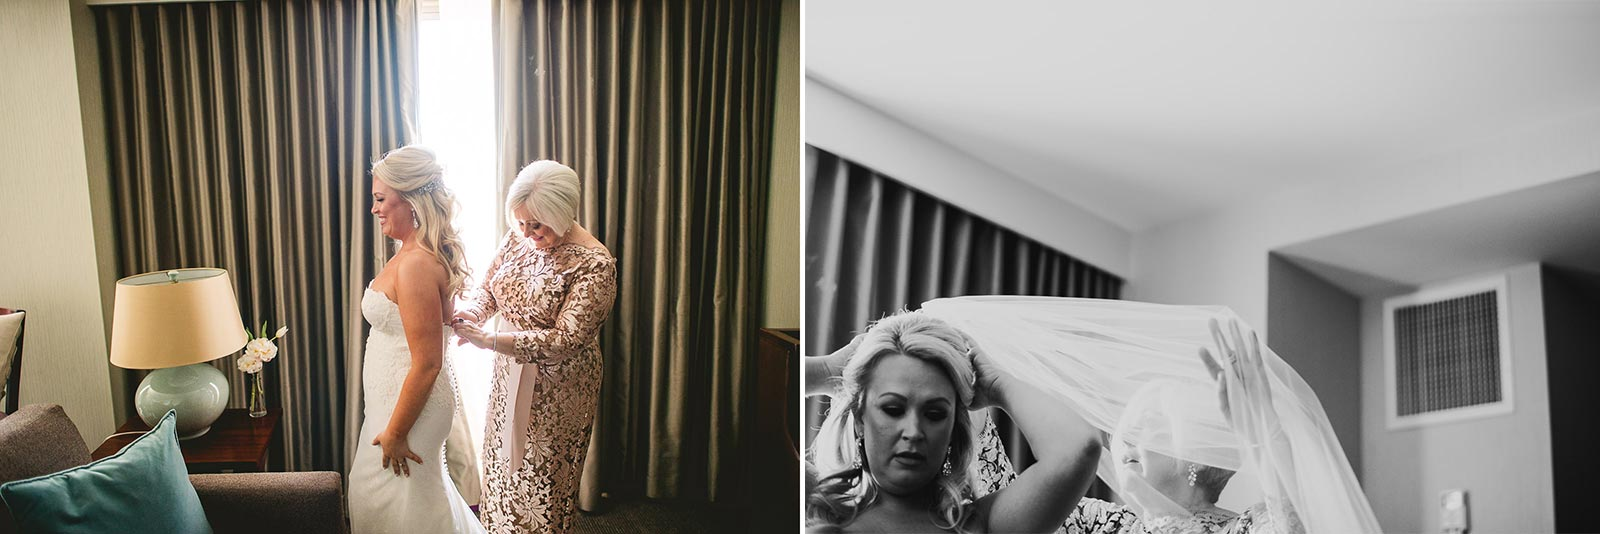 18 storytelling photography - Detroit Wedding of Liz and Patrick at Colony Club